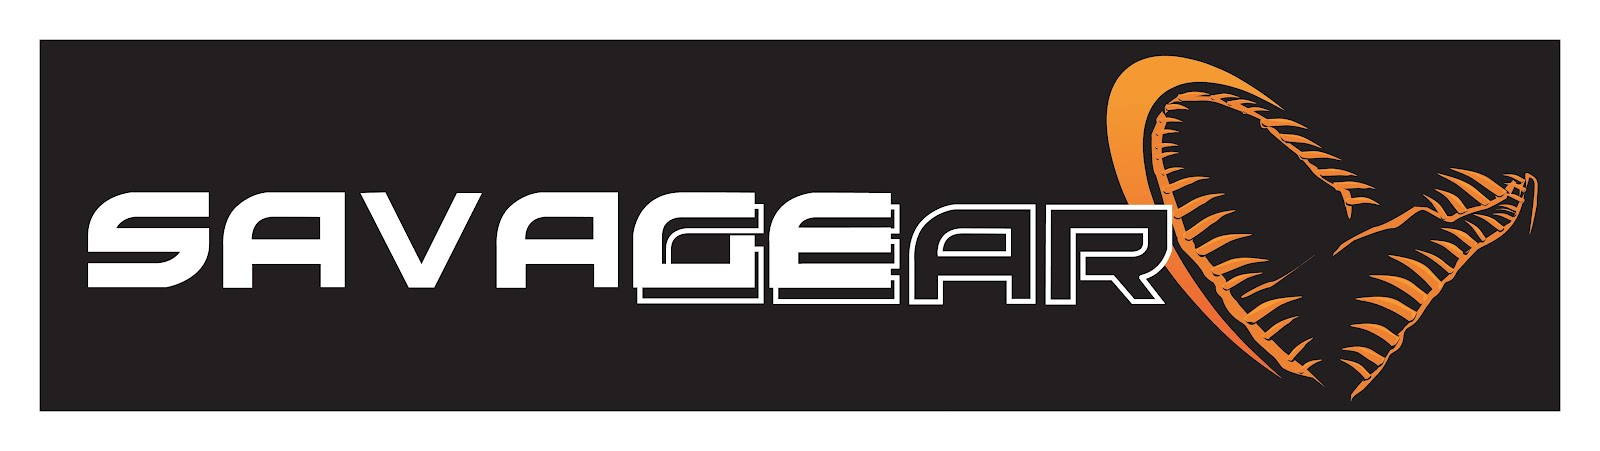 Savage Gear logotyp